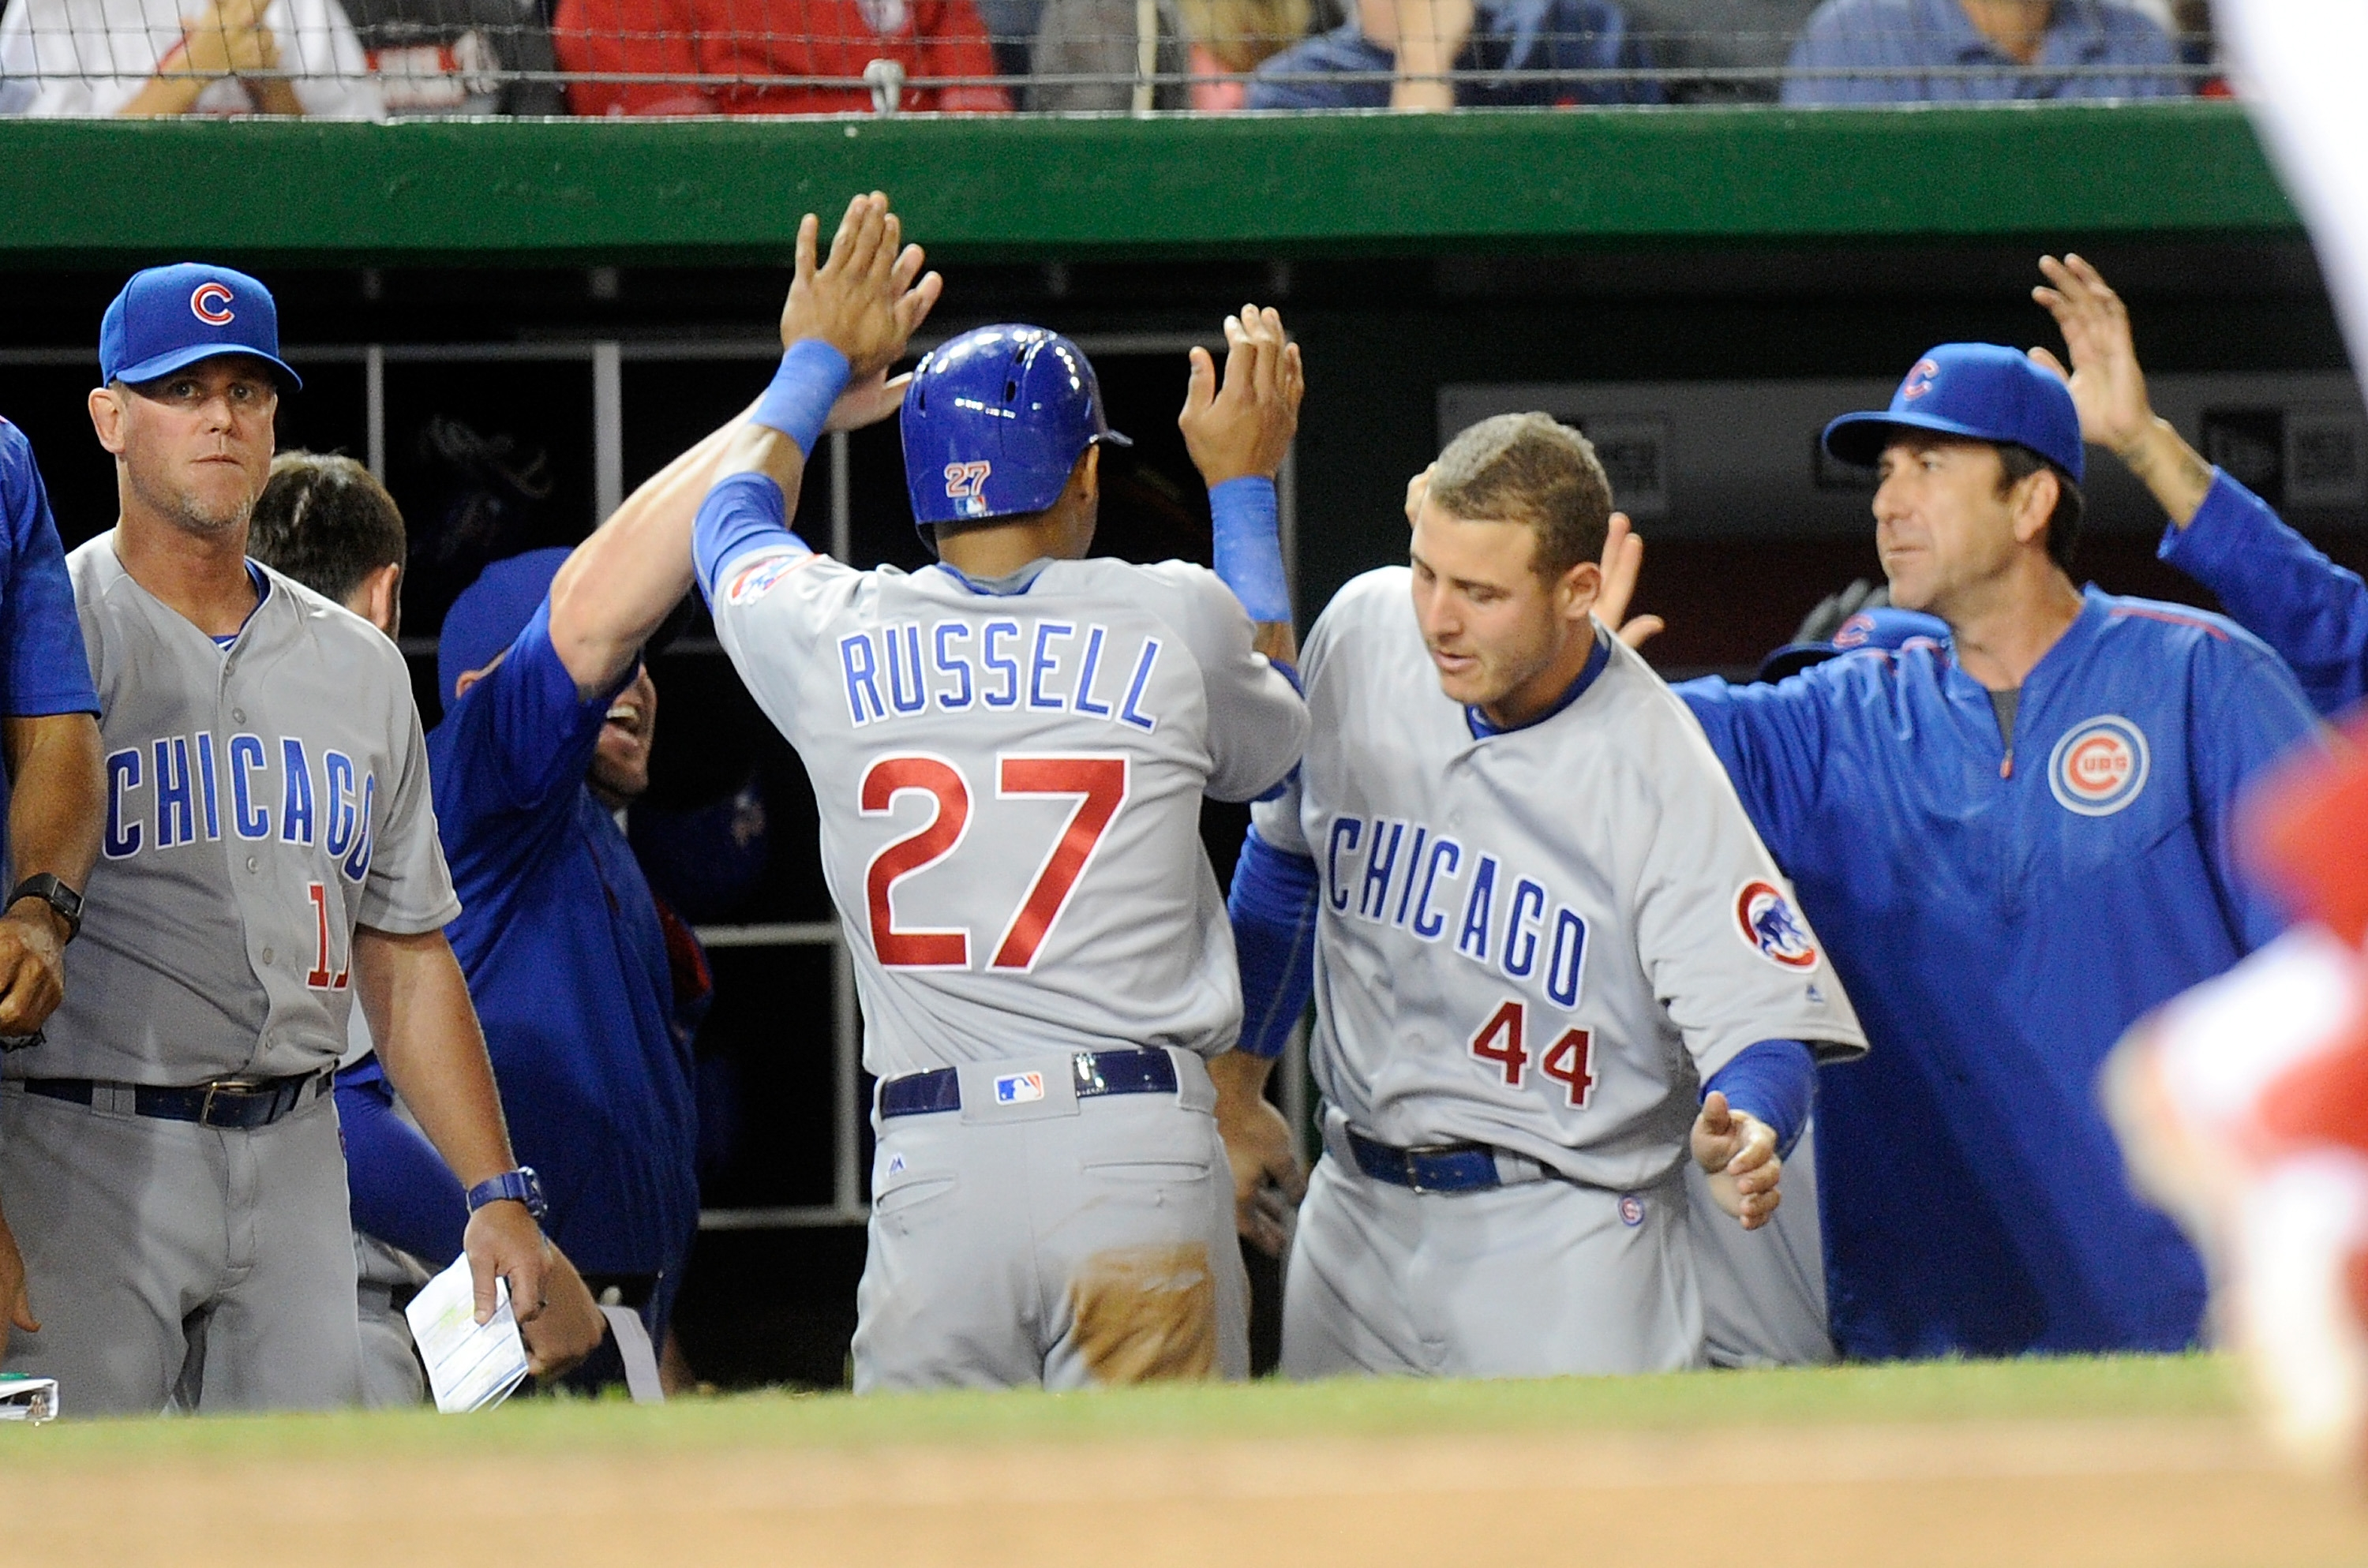 Addison Russell of the Chicago Cubs celebrates with teammates after scoring in the ninth inning against the Washington Nationals at Nationals Park on June 14. Chicago won the game 4-3.